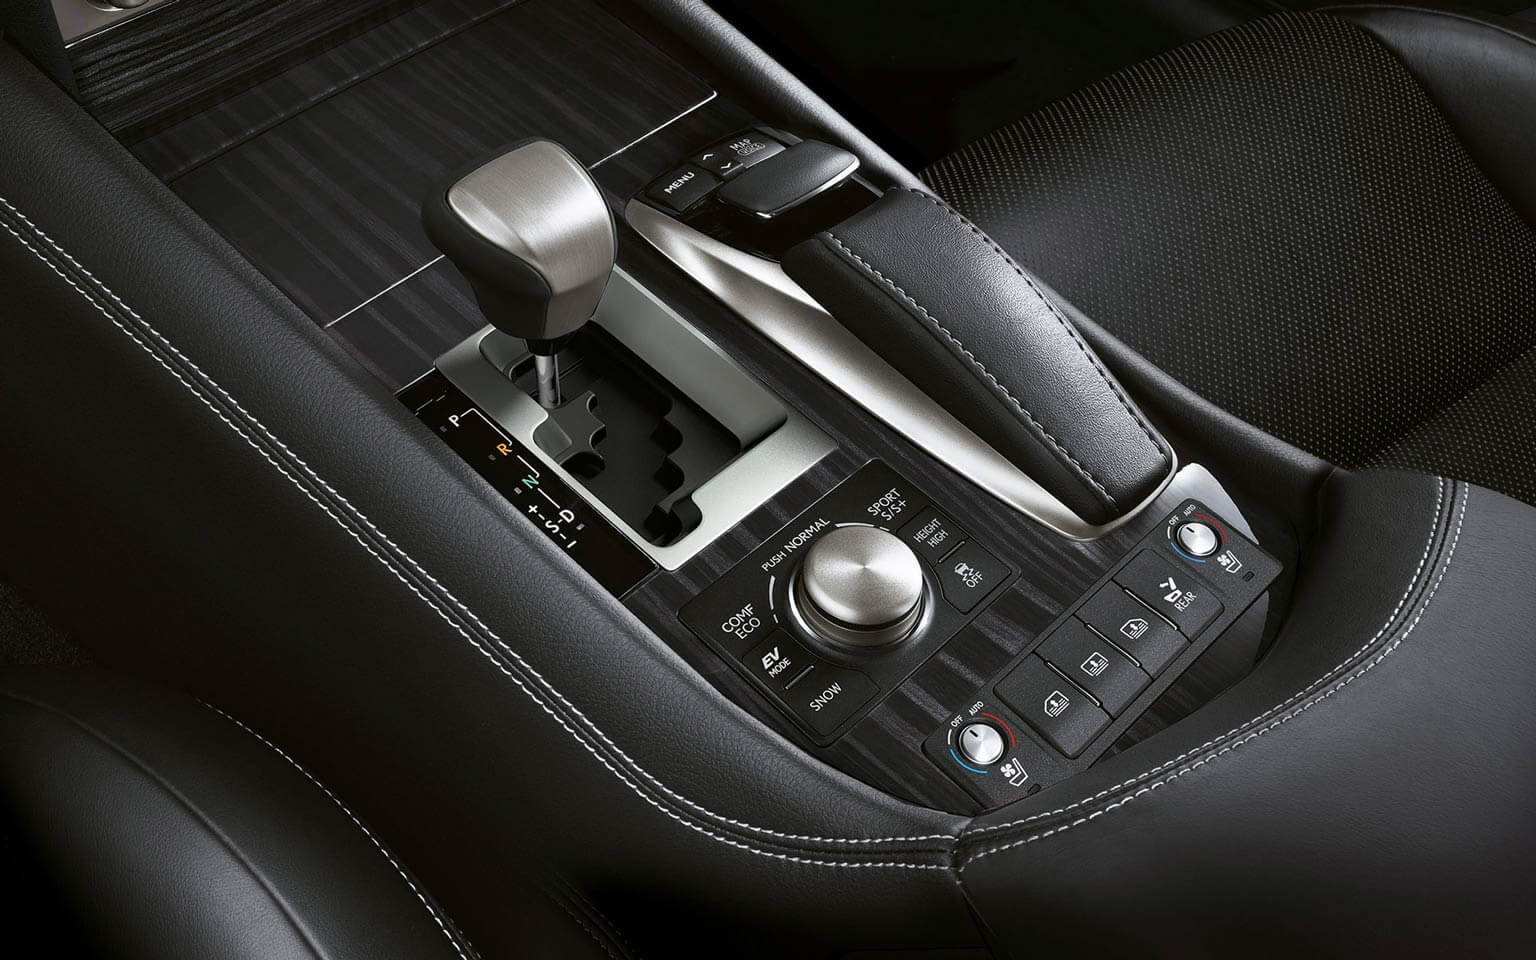 LS 460 L AWD in Black Premium Leather with Shimamoku Woodtrim